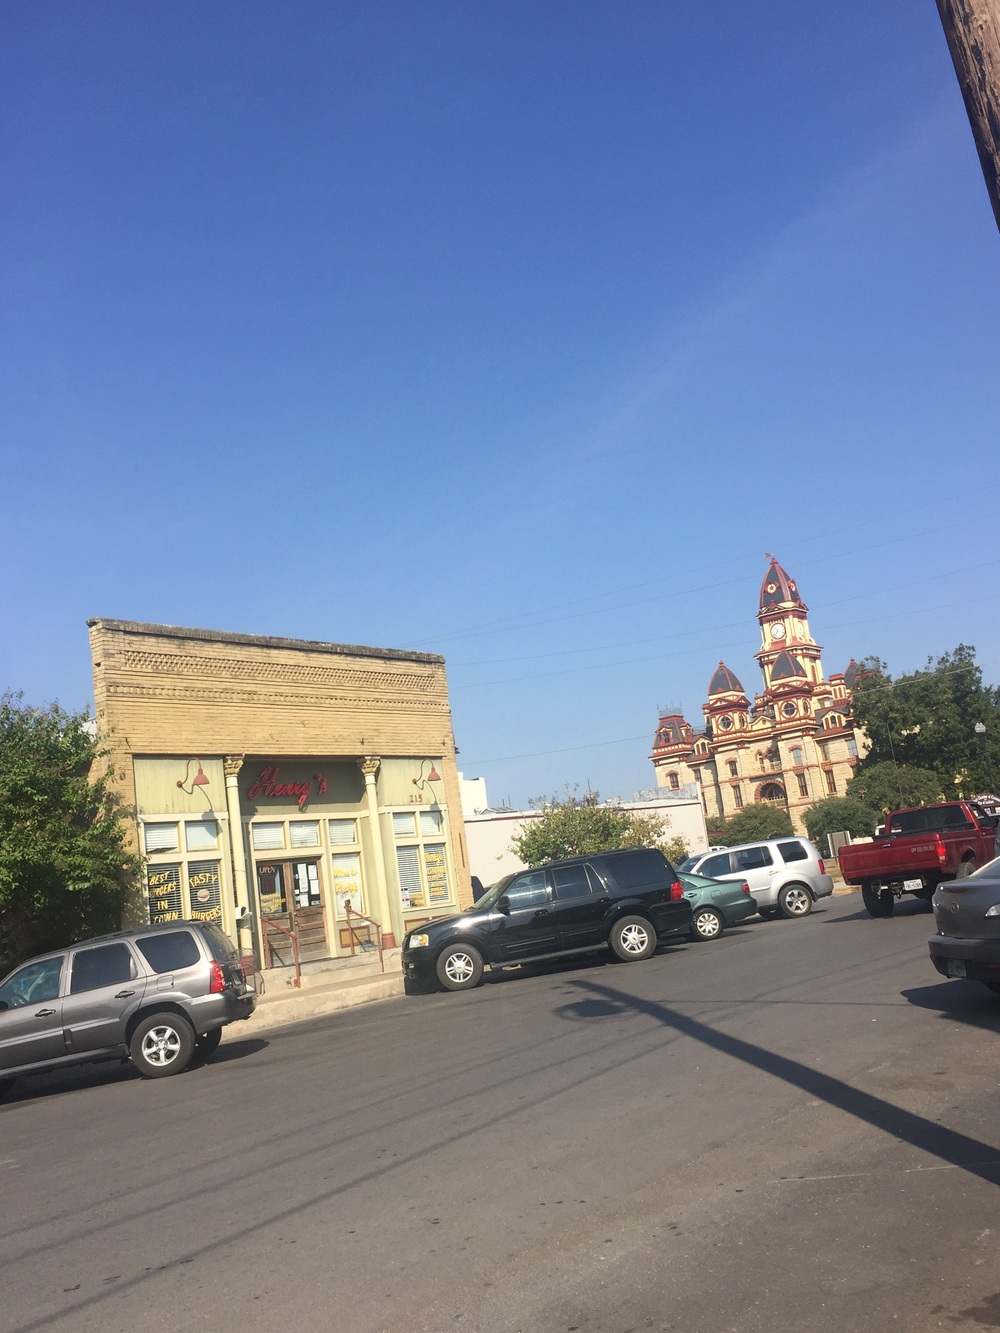 Downtown Lockhart, TX; Courthouse Square